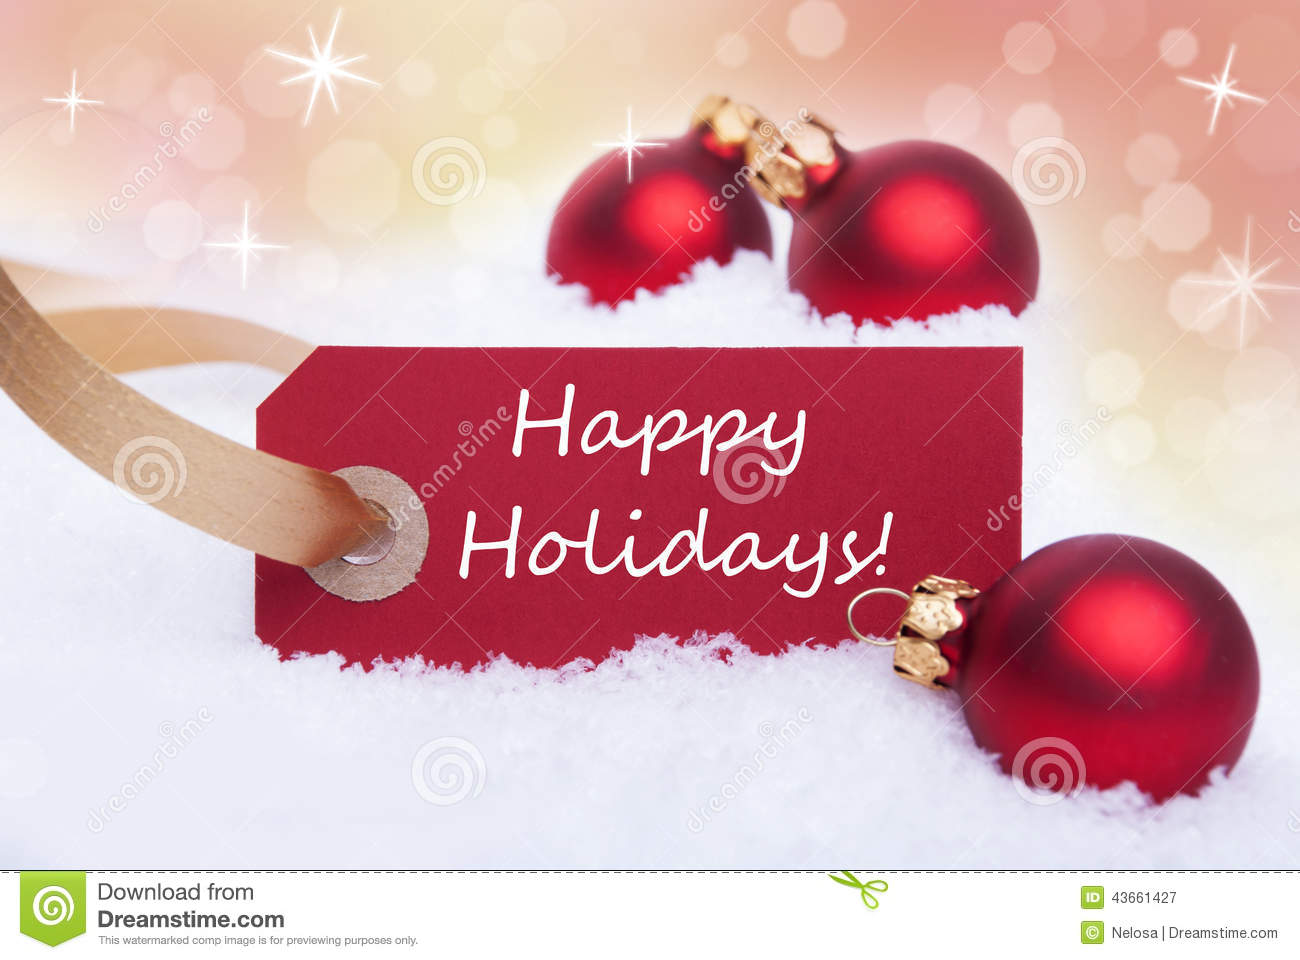 Happy Holidays And Thanks To All >> Christmas Label With Happy Holidays Stock Image Image Of